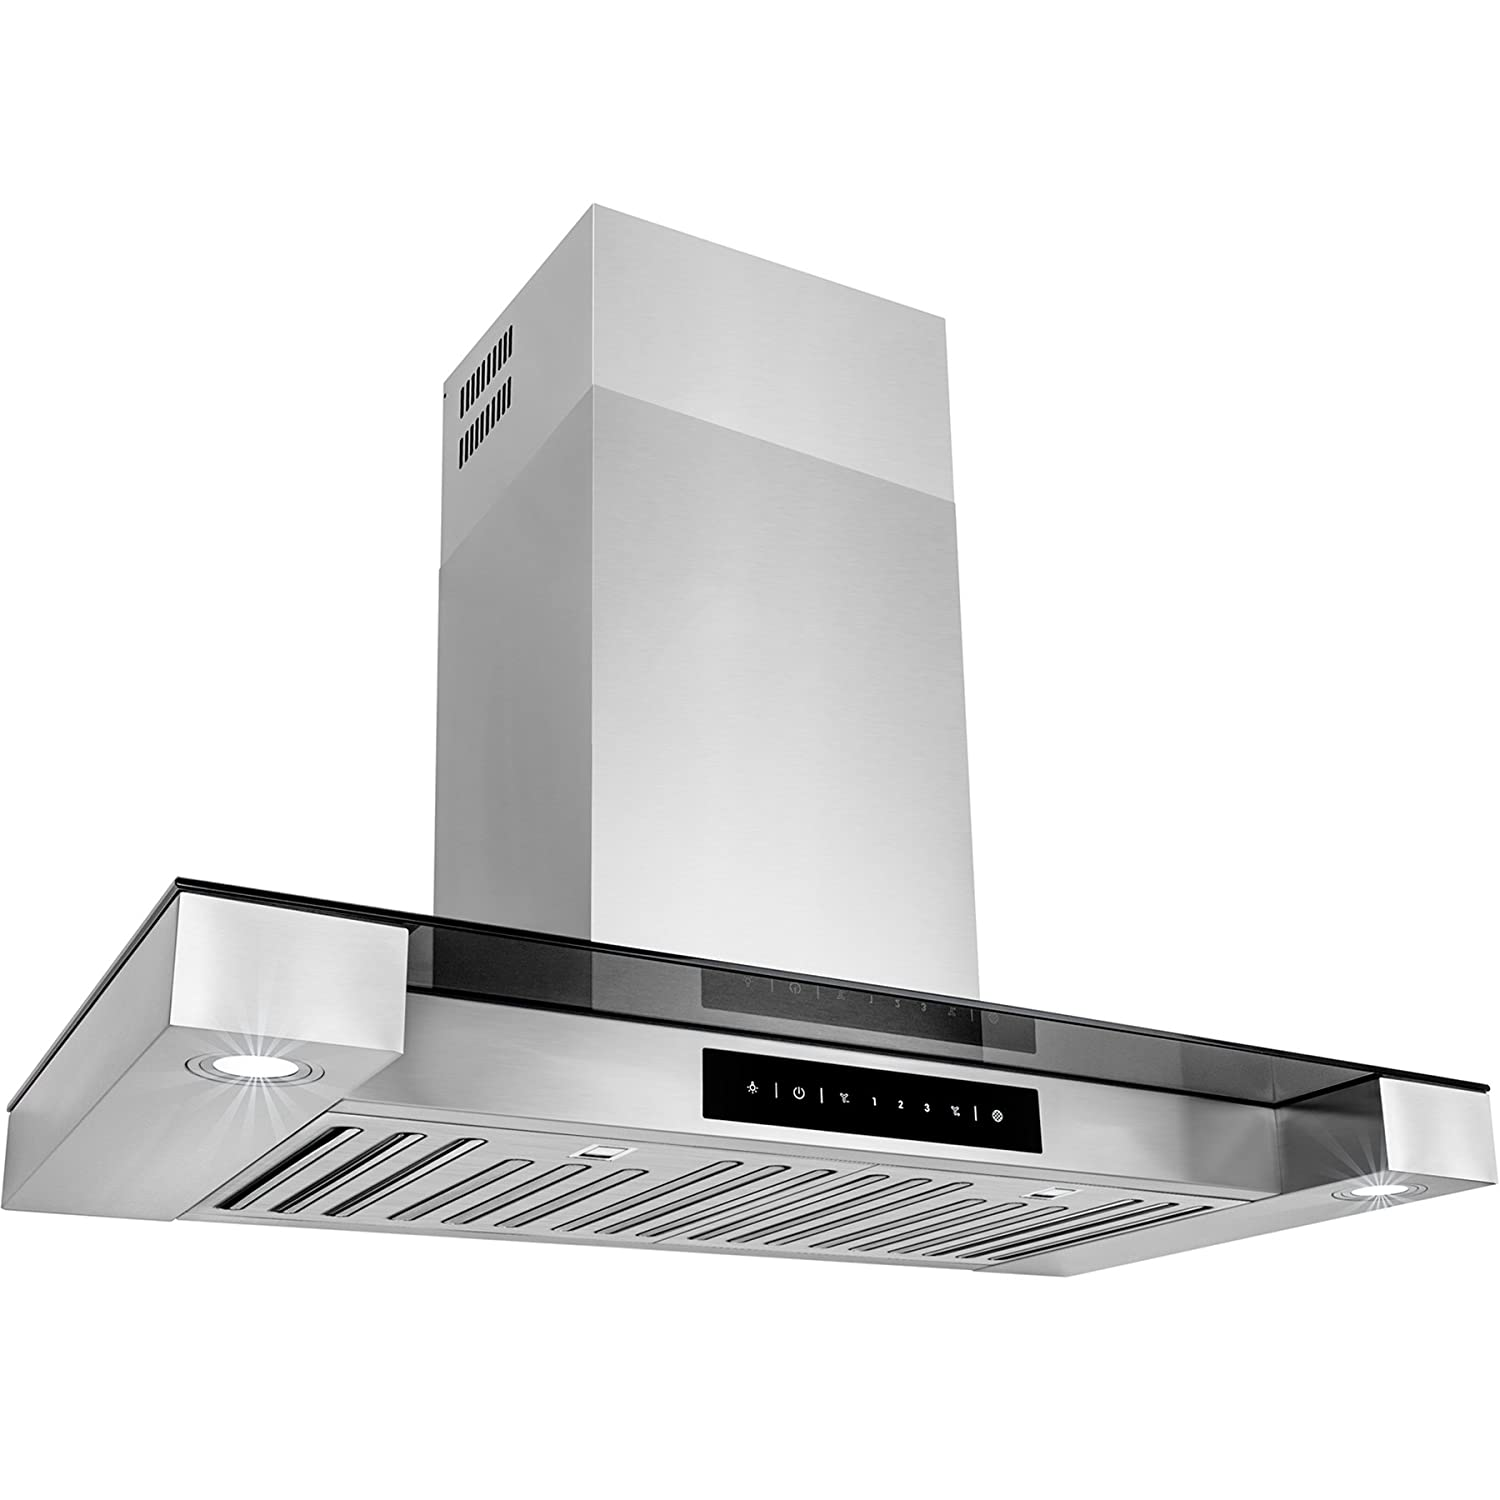 Golden Vantage 30 Stainless Steel Tempered Glass Wall Mount Style Kitchen Cooking Vent Range Hood w/ LED Lights Touch Control Baffle Filters GV-RH0243